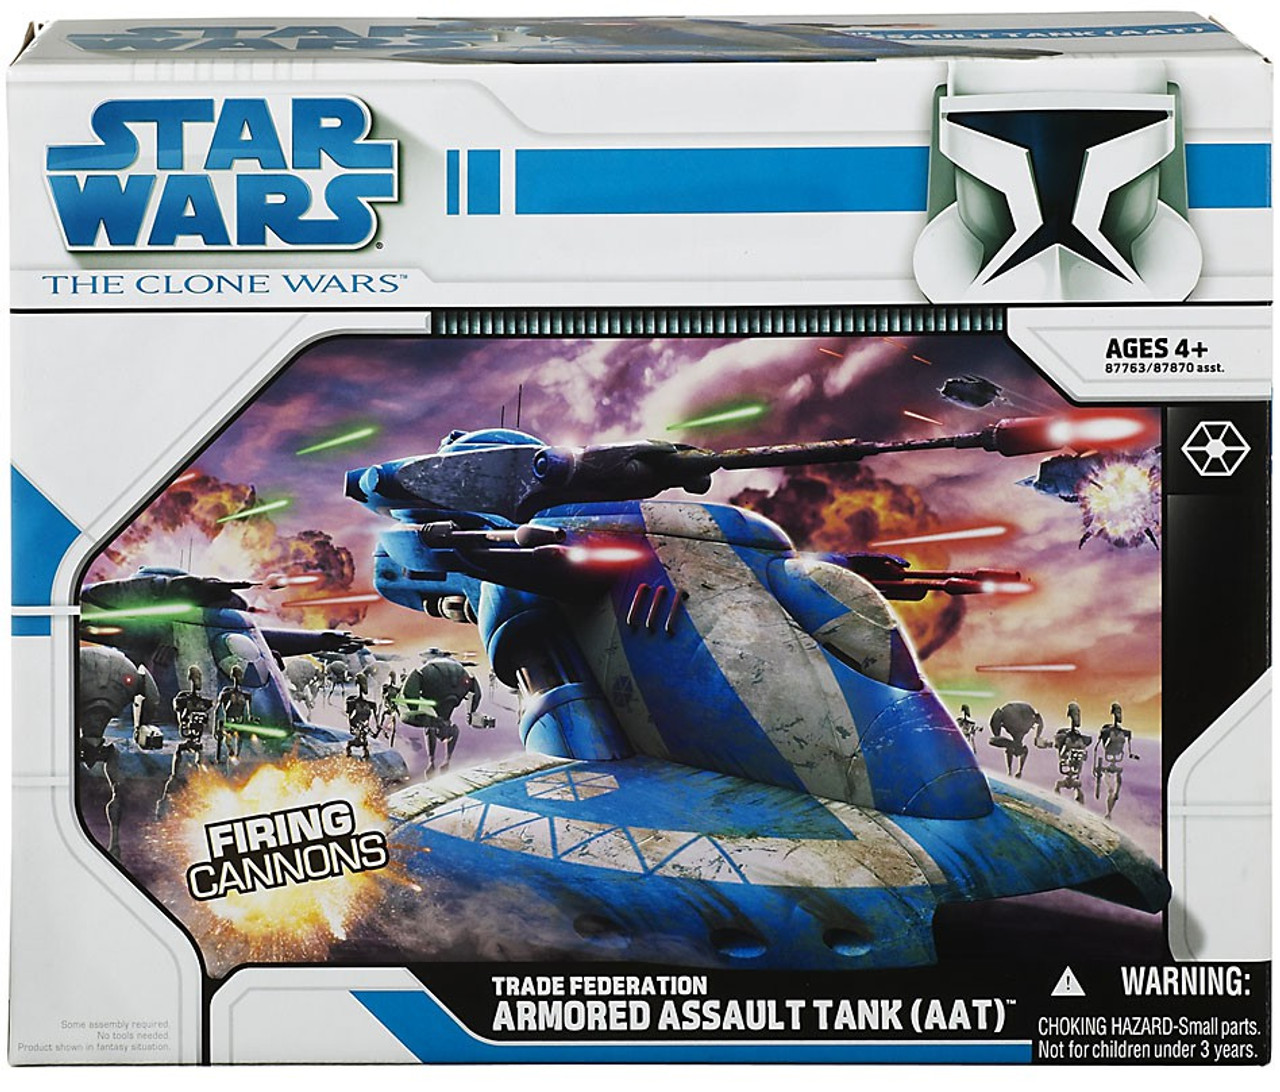 Star Wars The Clone Wars Vehicles 2008 Trade Federation Armored Assault Tank (AAT) Action Figure Vehicle